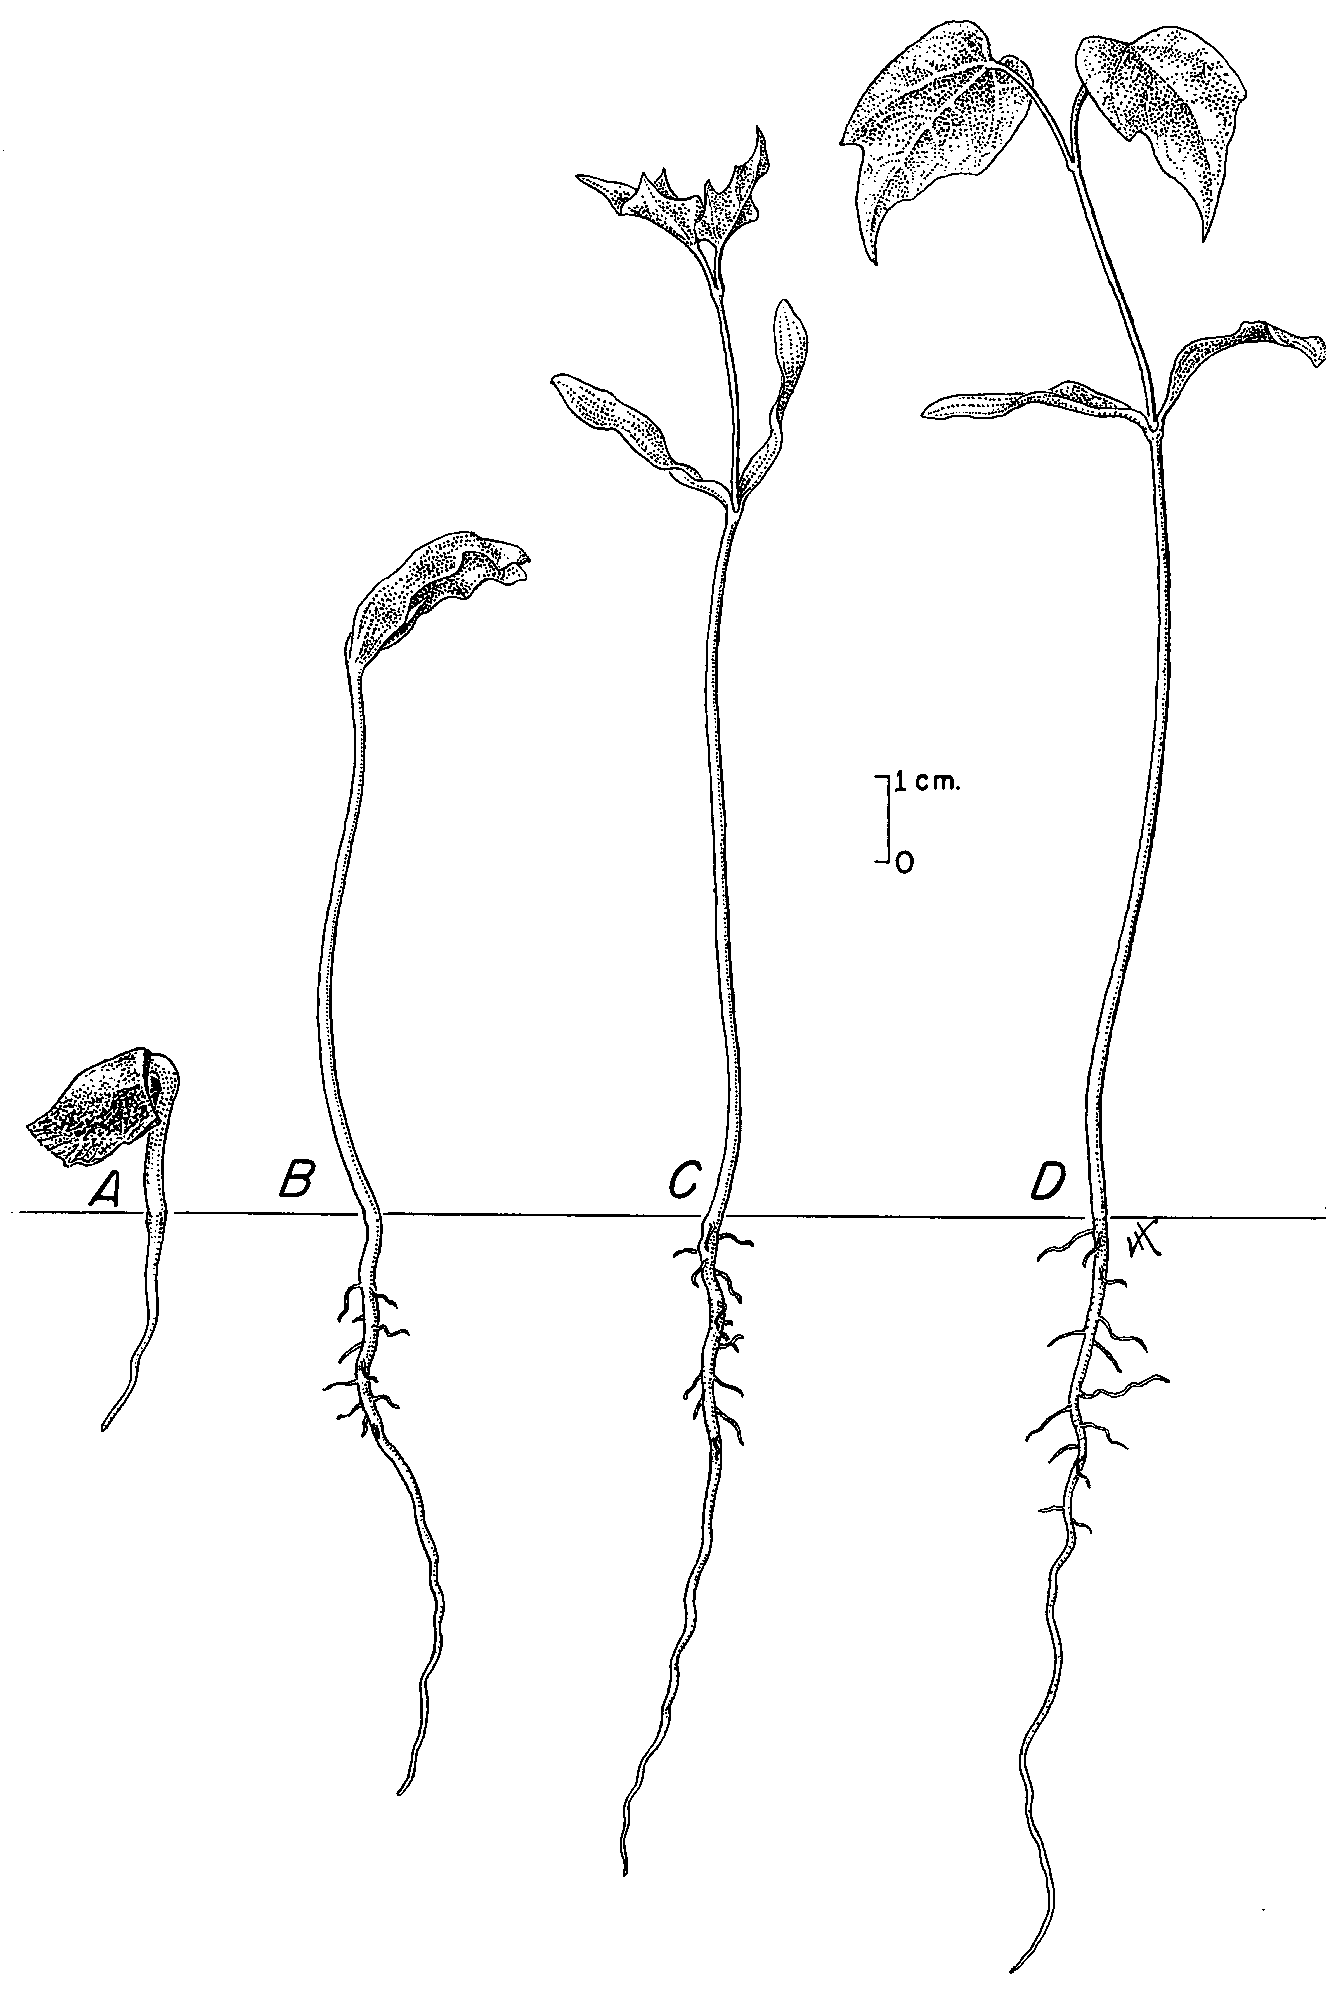 File:Acer seedling drawing.png - Wikipedia, the free encyclopedia